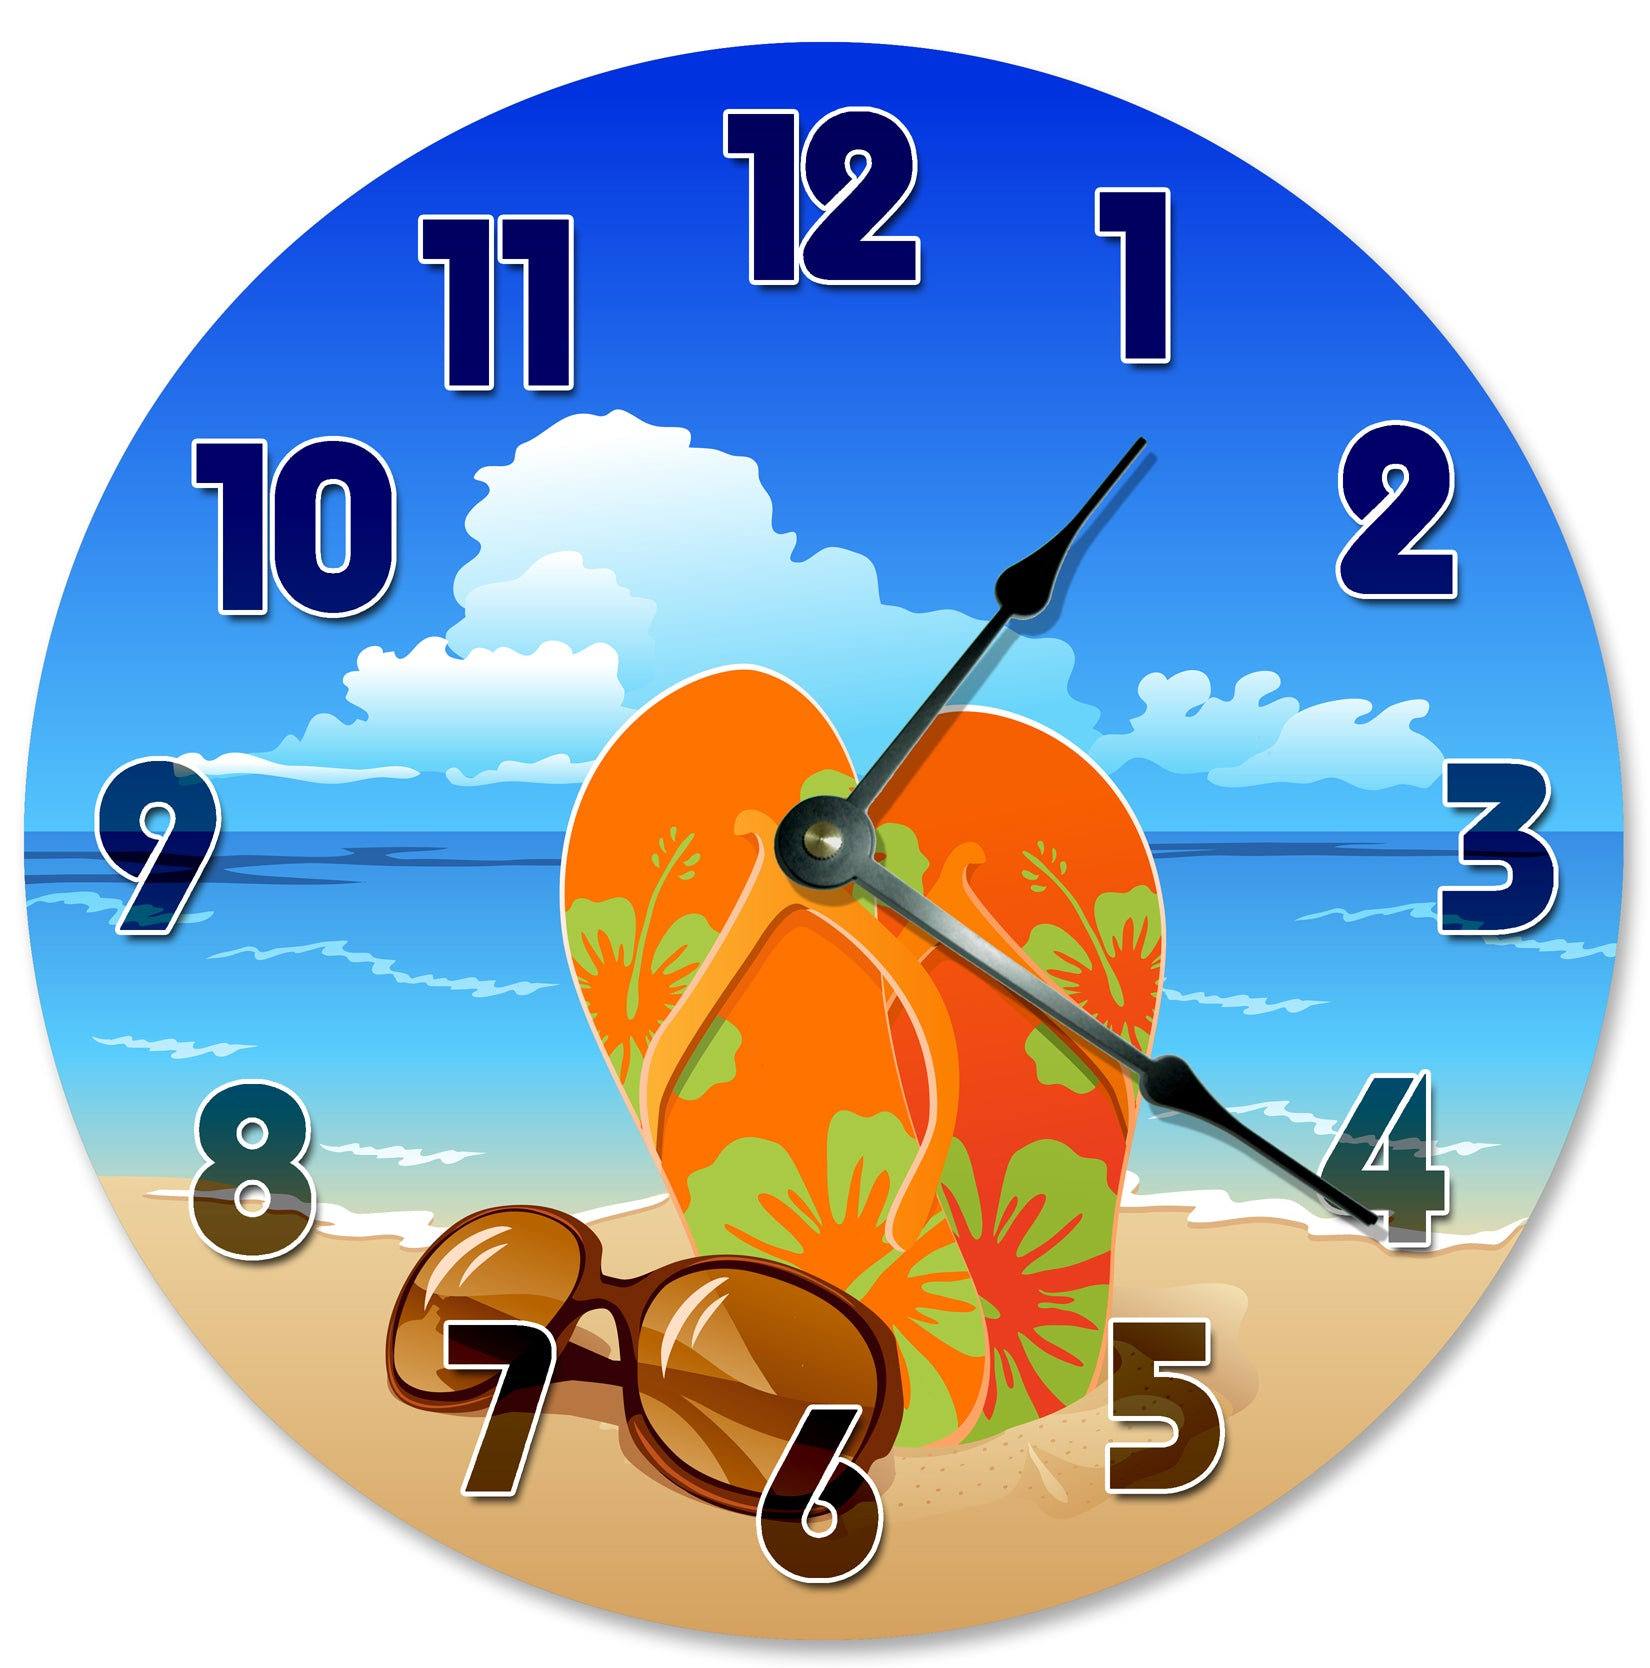 Sandles Sunglases On Beach Hanging Wall Clock